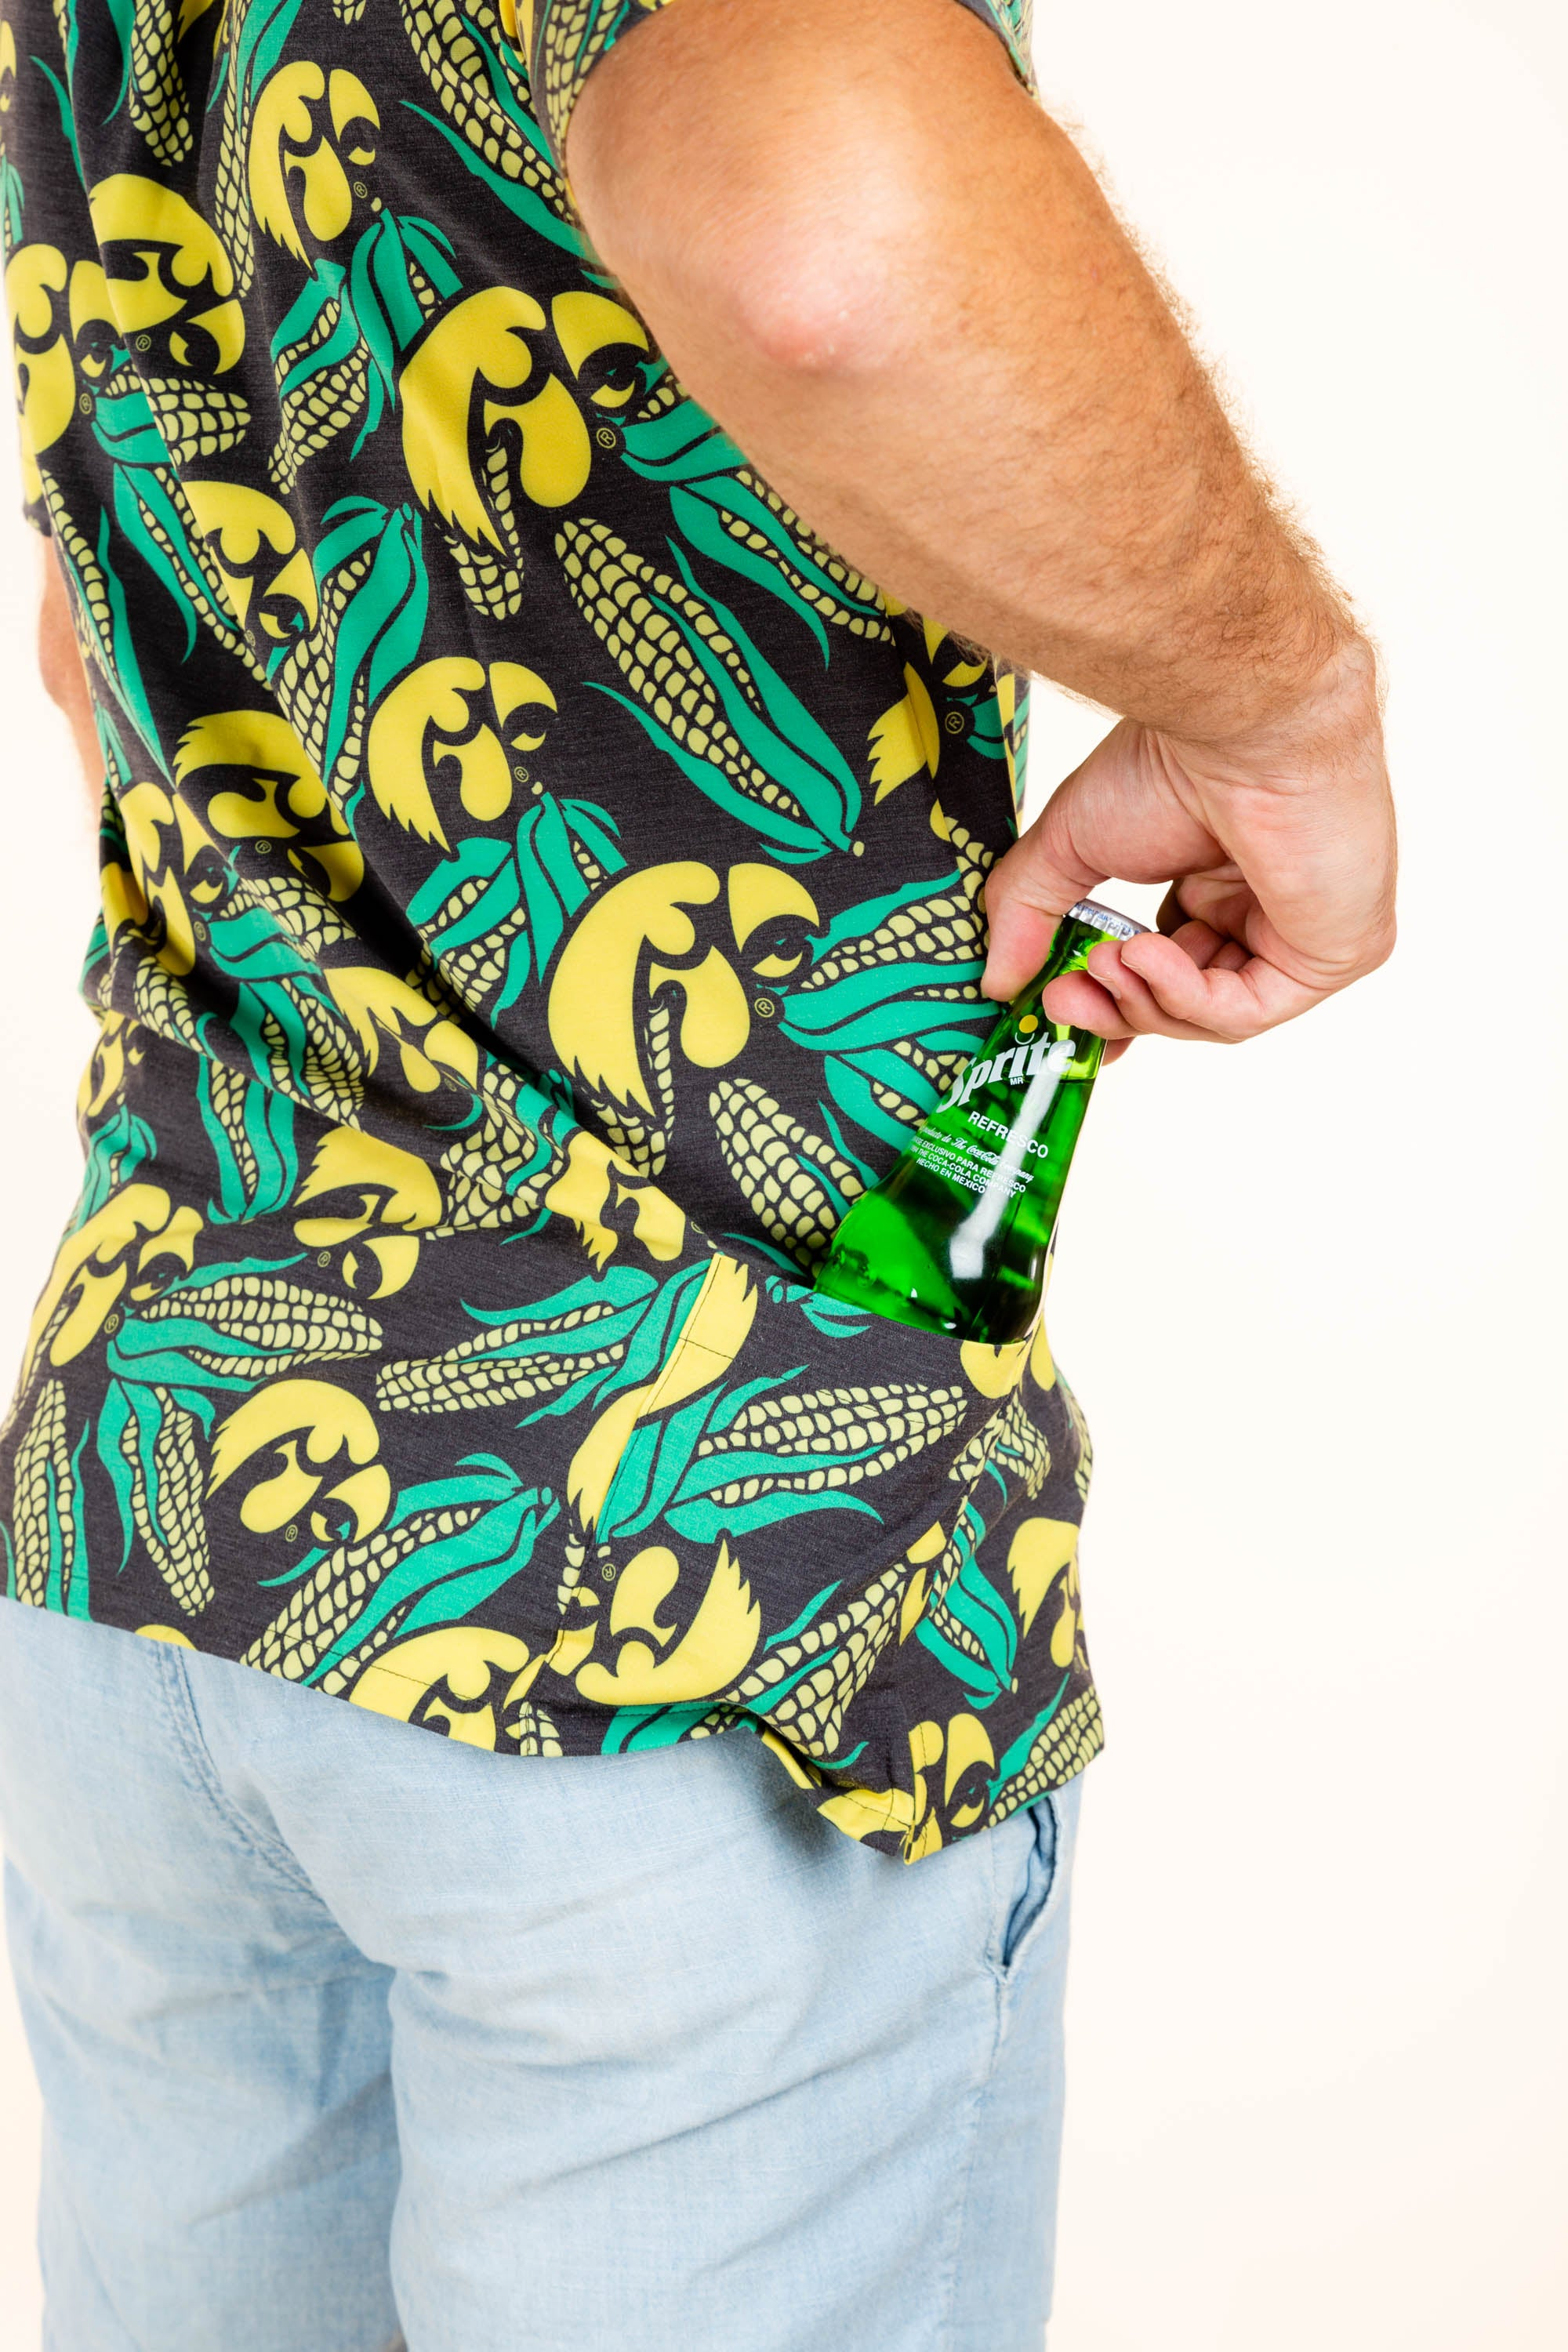 University of Iowa Corn Party Shirt